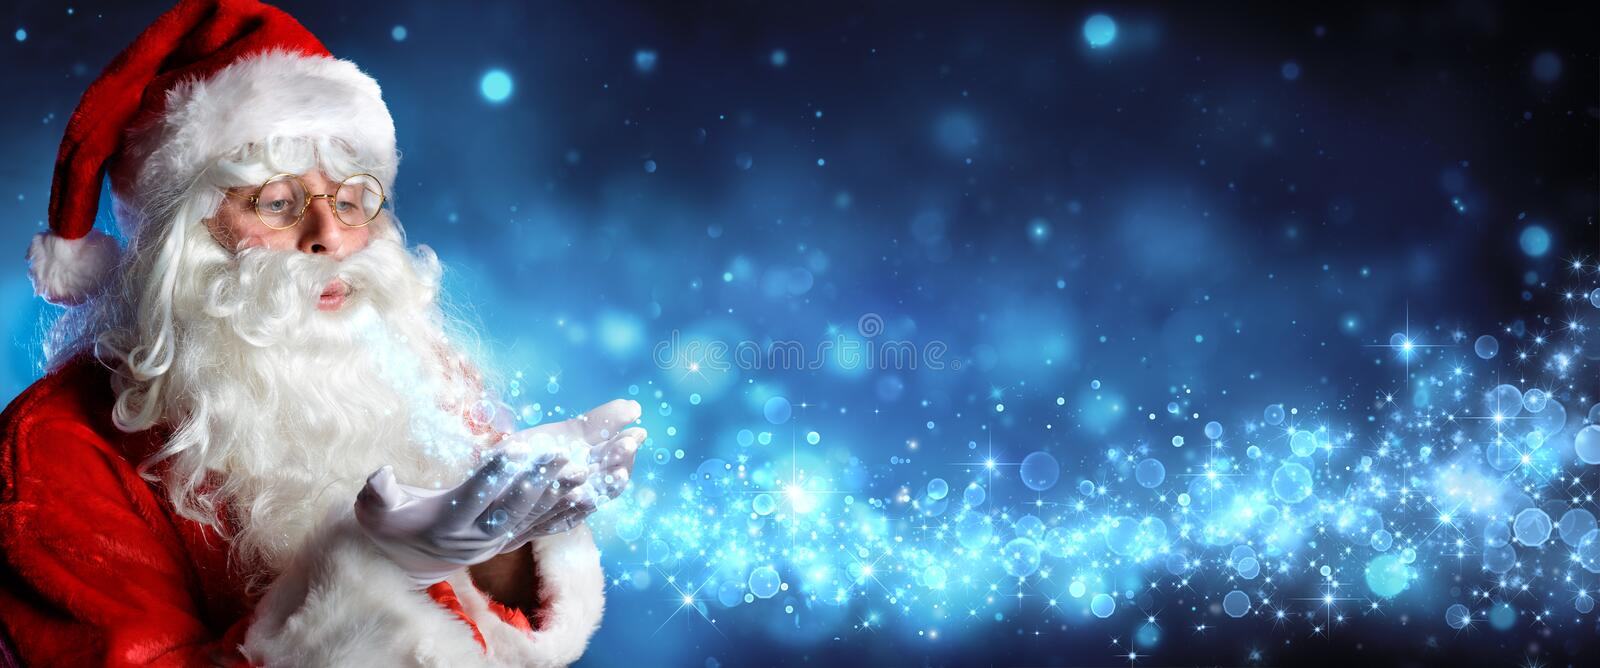 Santa Claus Blowing Magic Christmas Stars images stock